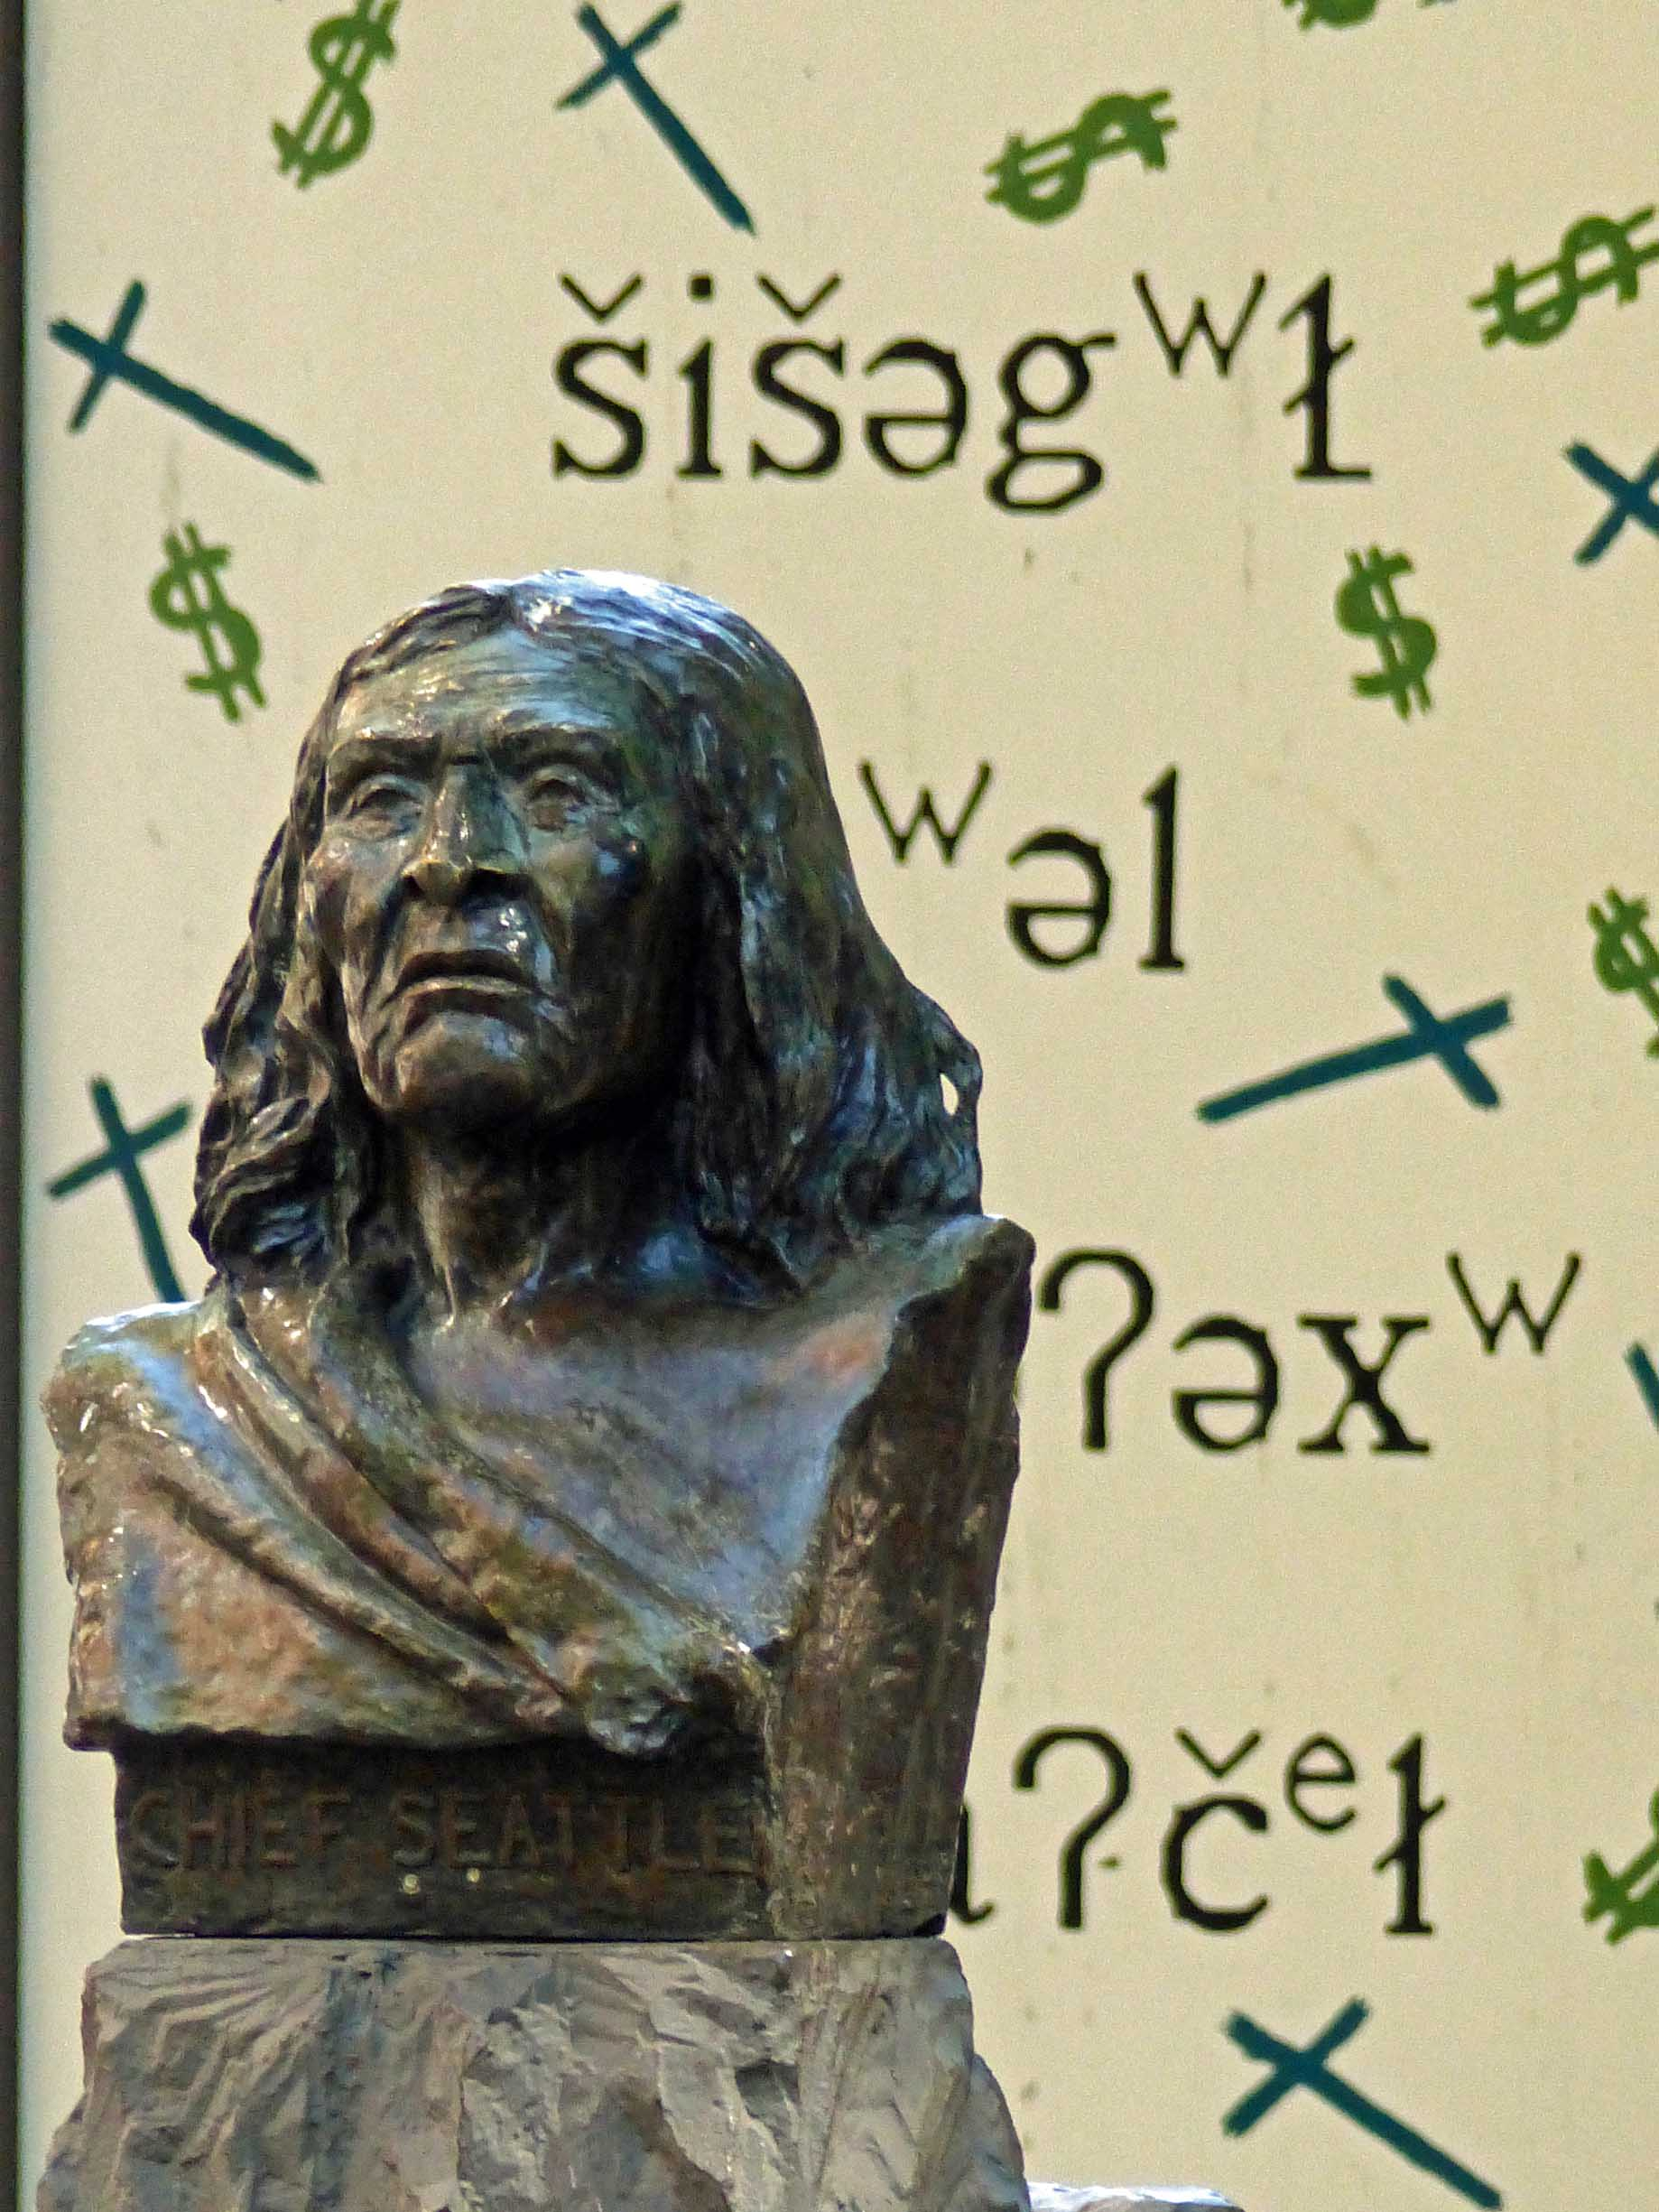 Stone bust of a Native American